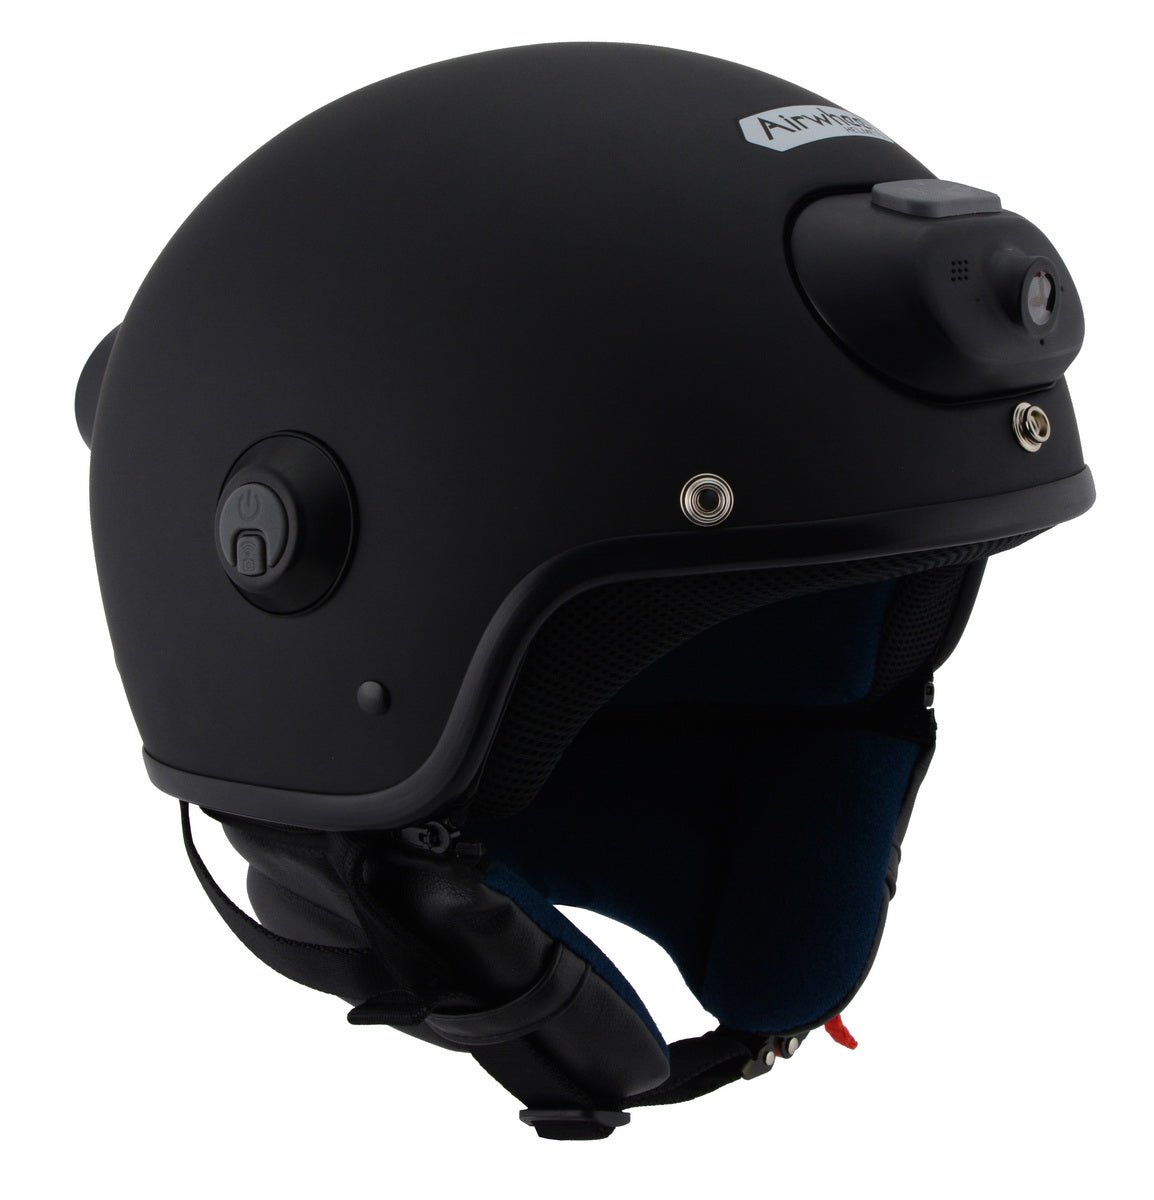 Milwaukee Performance Helmet MPH9802DOT 'Vision' Open Face Matte Black